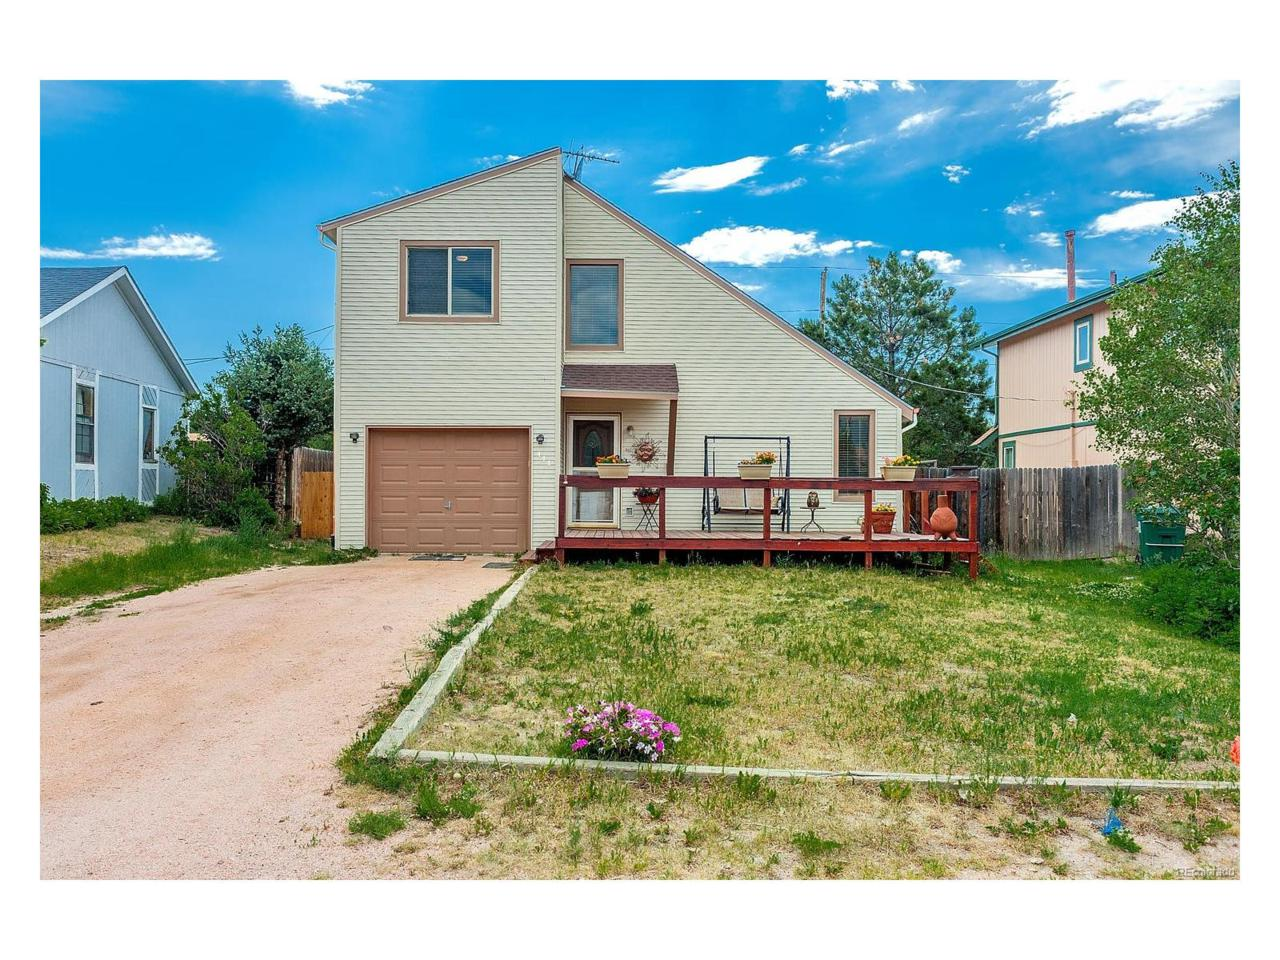 476 Jefferson Street, Monument, CO 80132 (MLS #2570087) :: 8z Real Estate